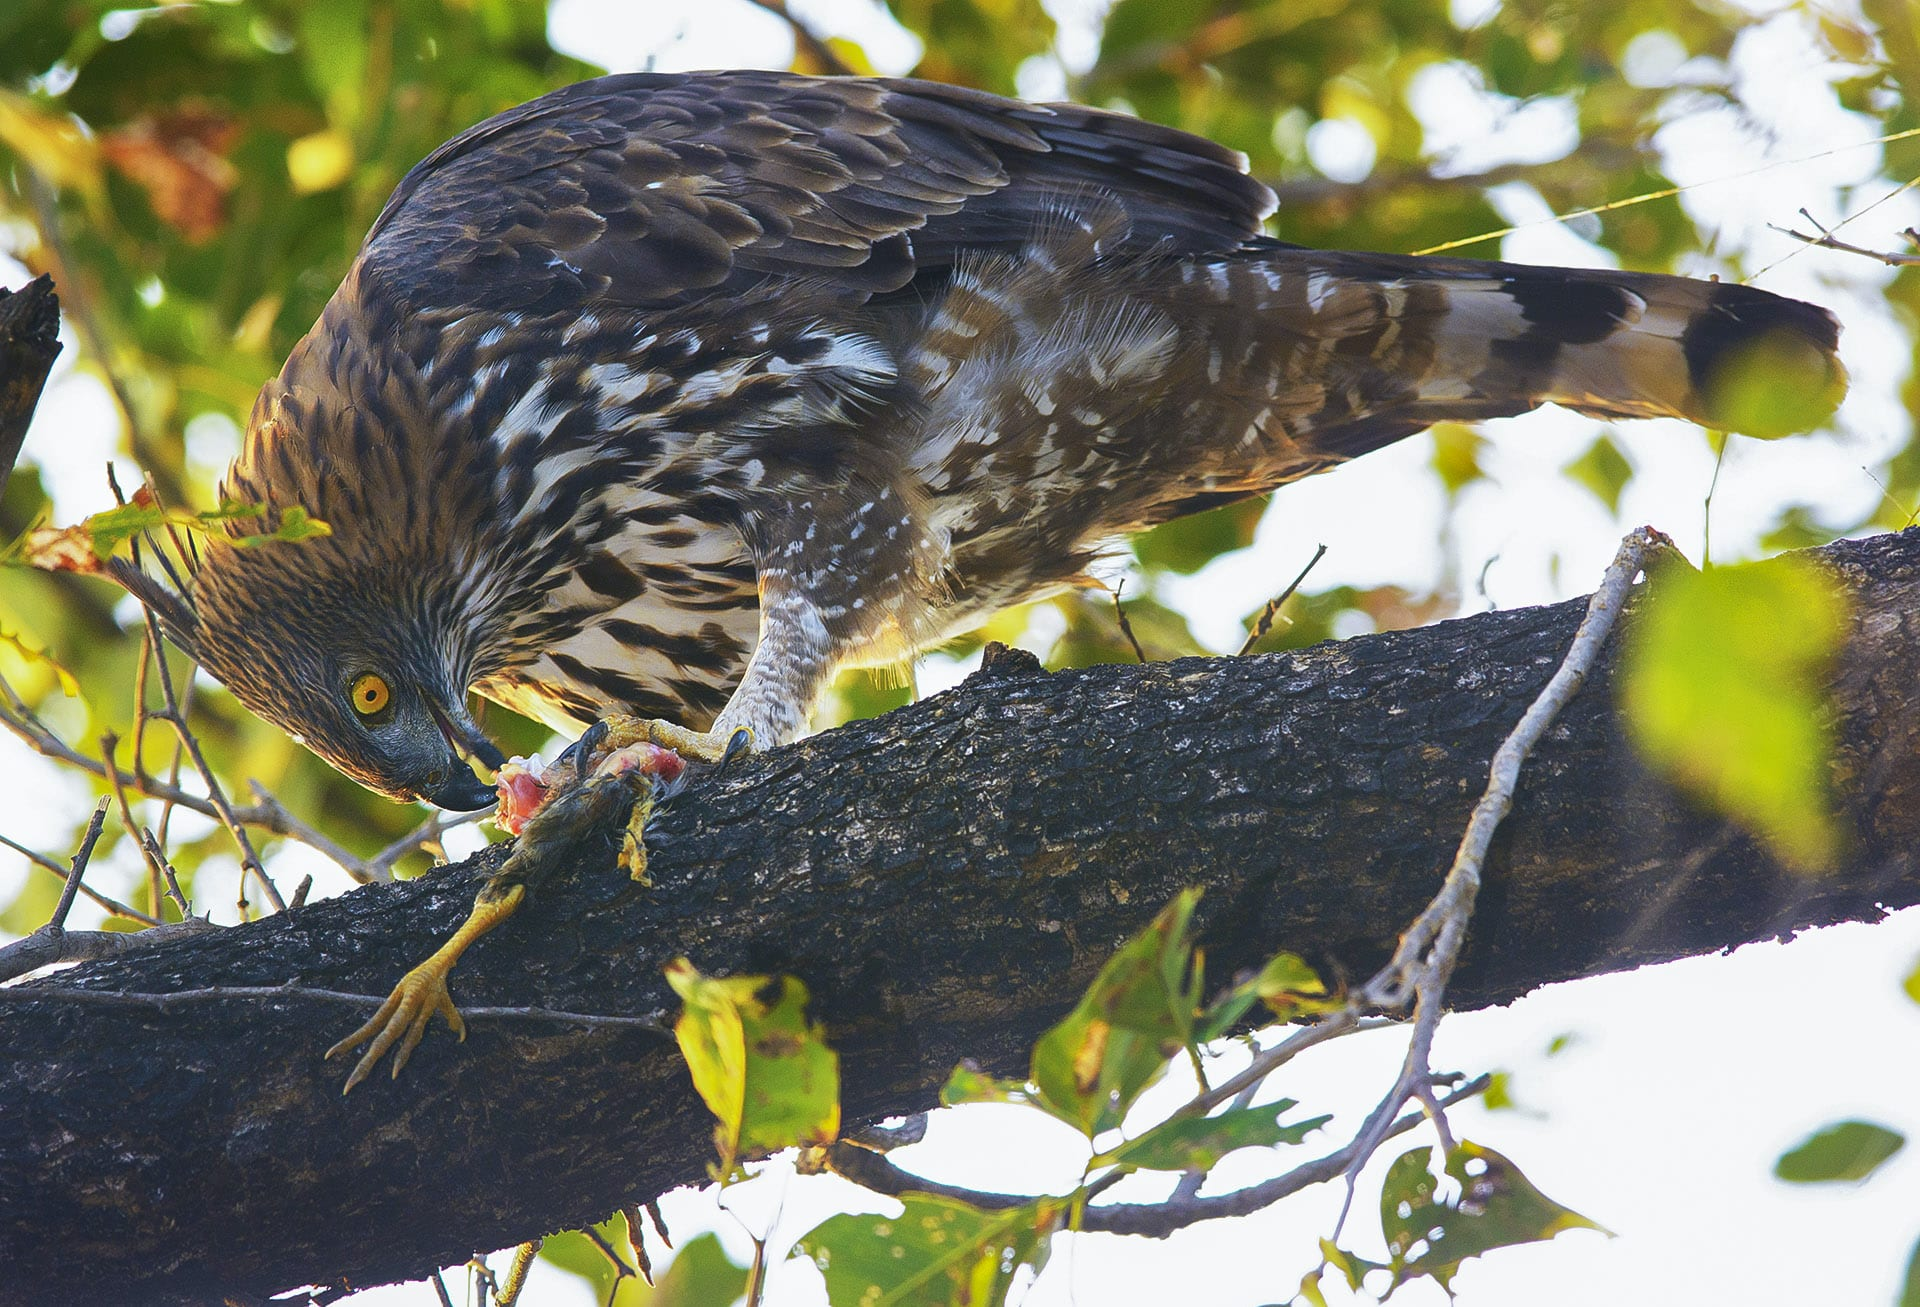 Satpura National Park has over 300 species of birds. In the dense forests of mahua and sal you can spot, among many other birds, such as this changeable hawk eagle